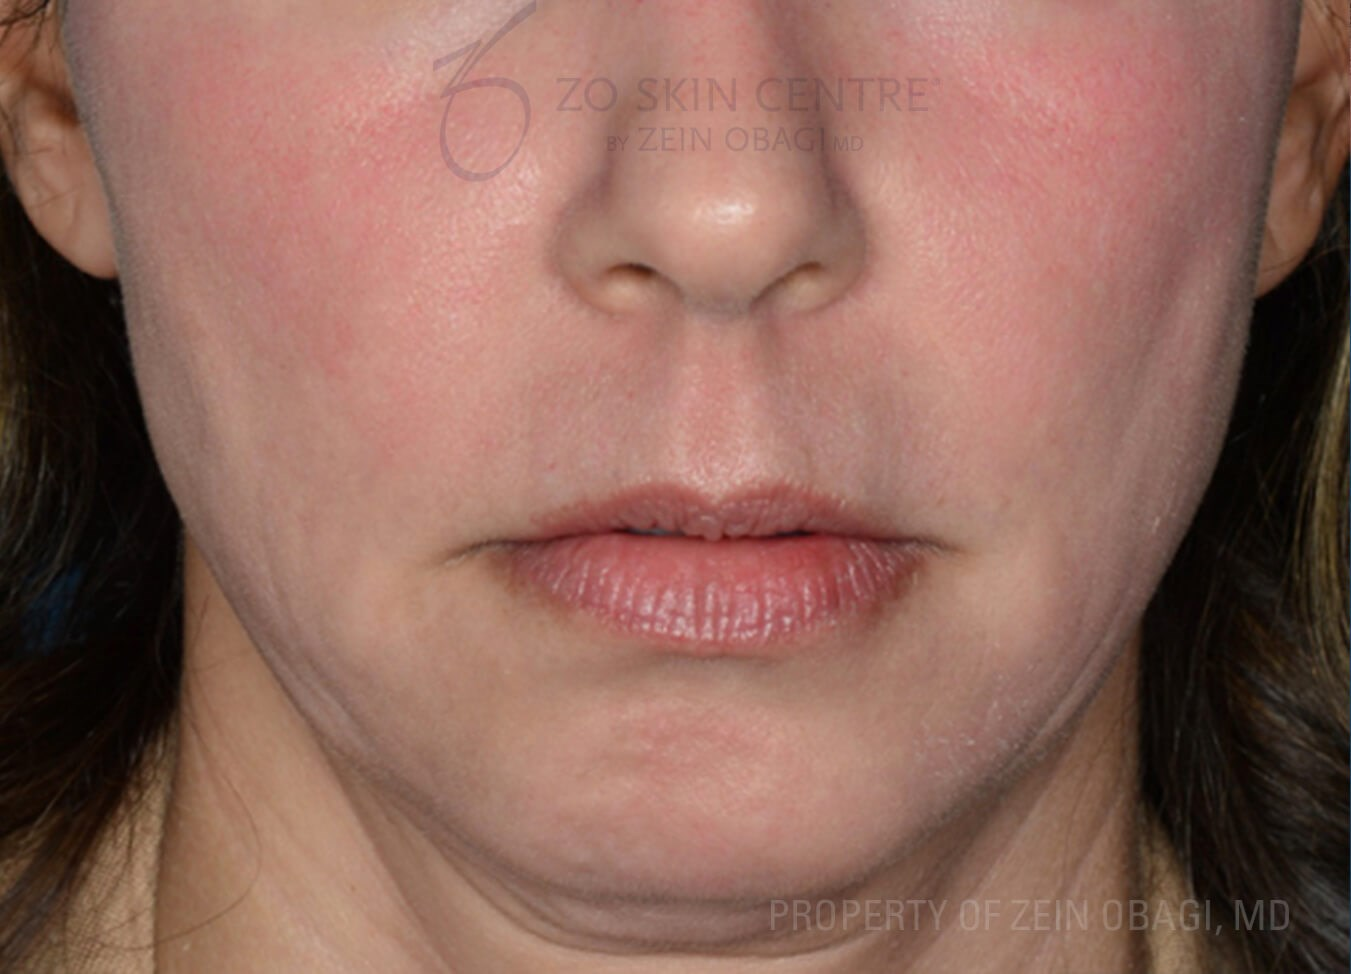 Front View - Cheek and Chin After Customized Treatment